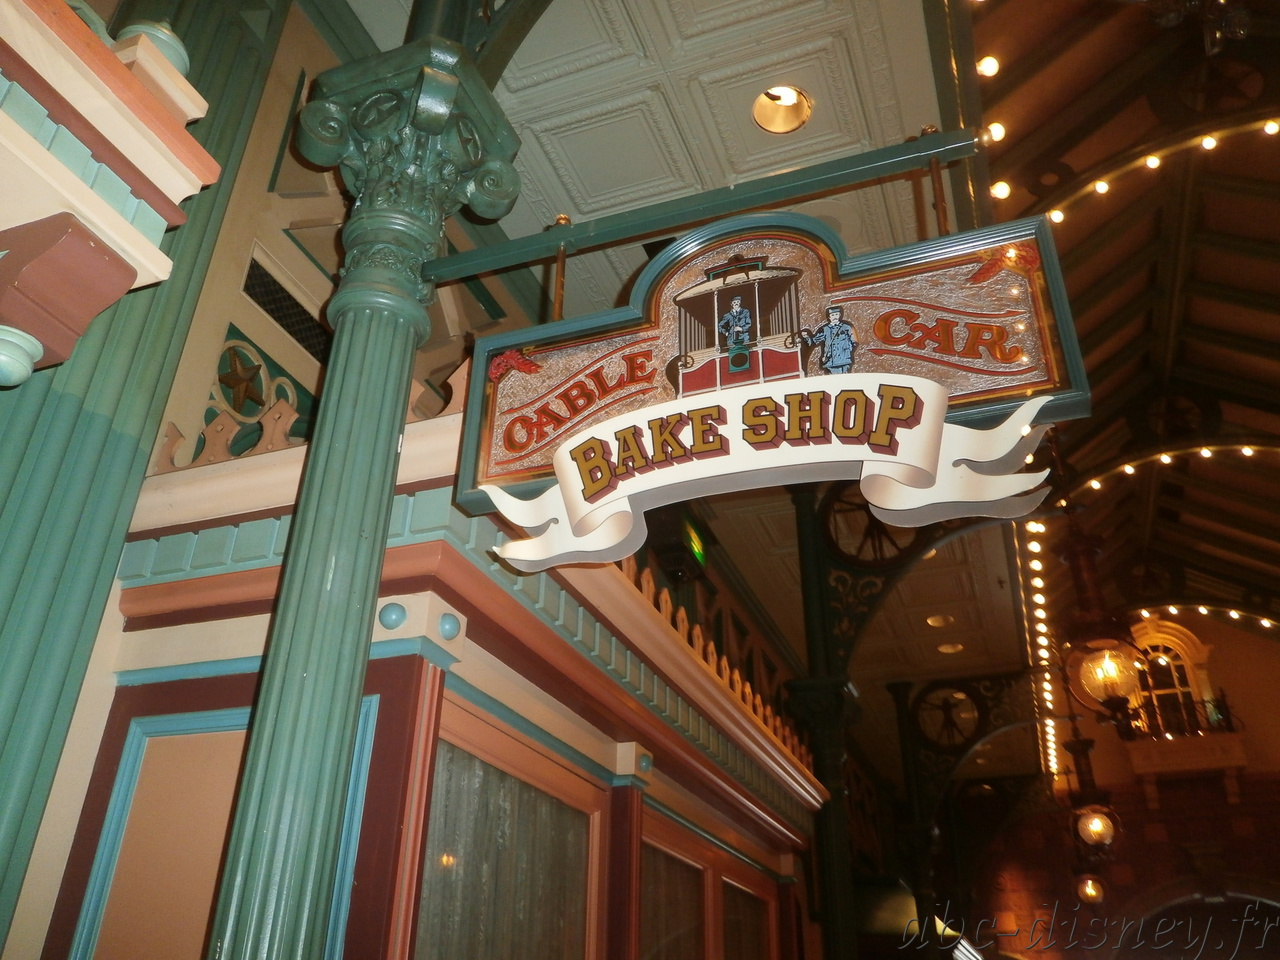 R cable car bake shop 2